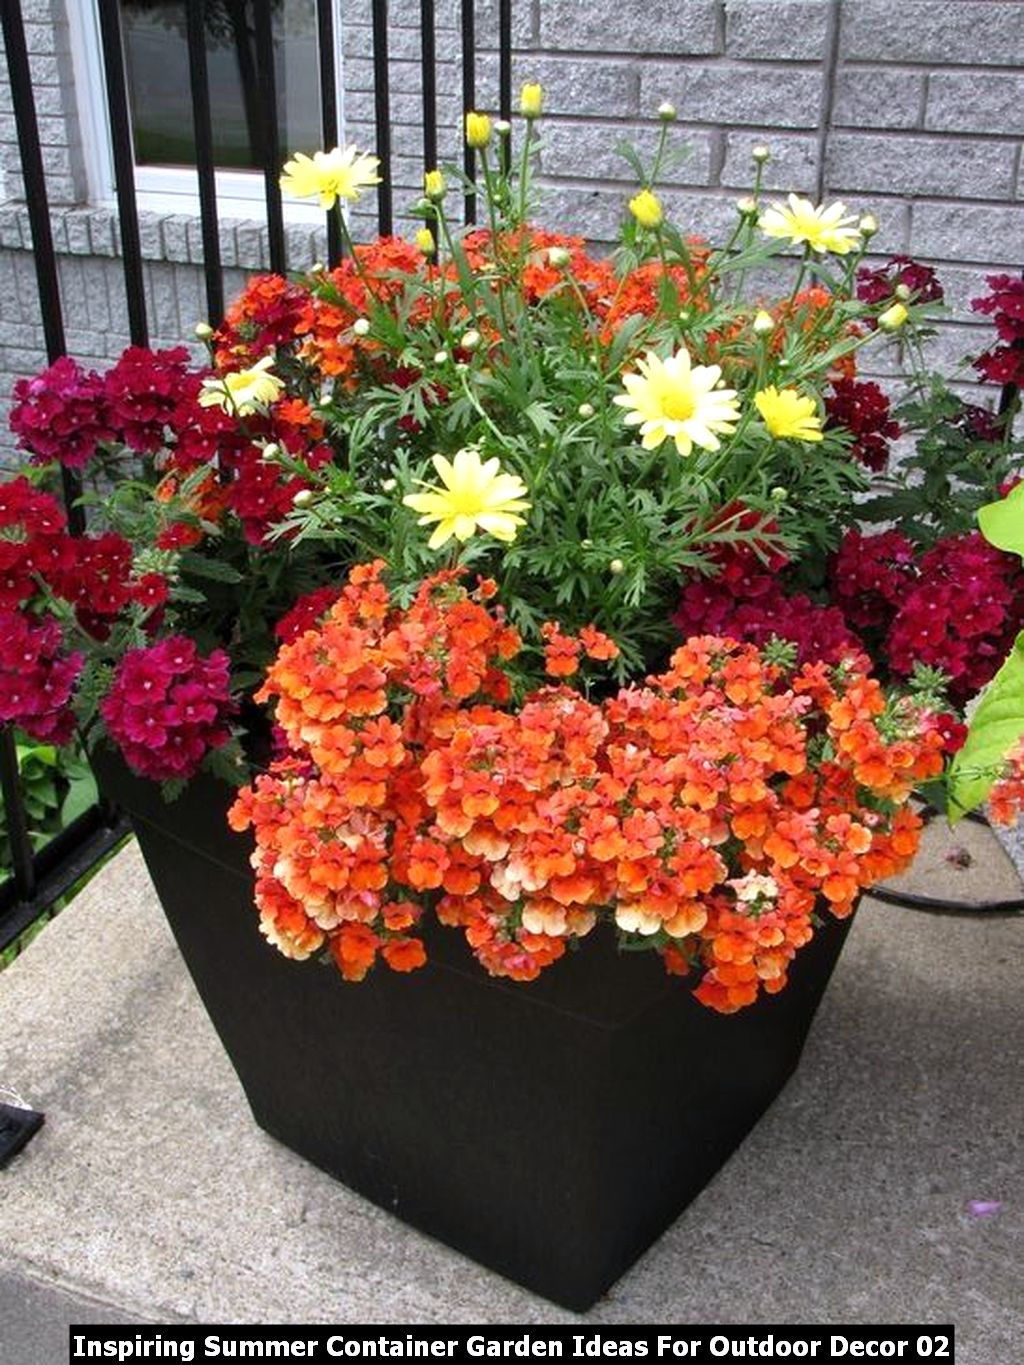 Inspiring Summer Container Garden Ideas For Outdoor Decor 02